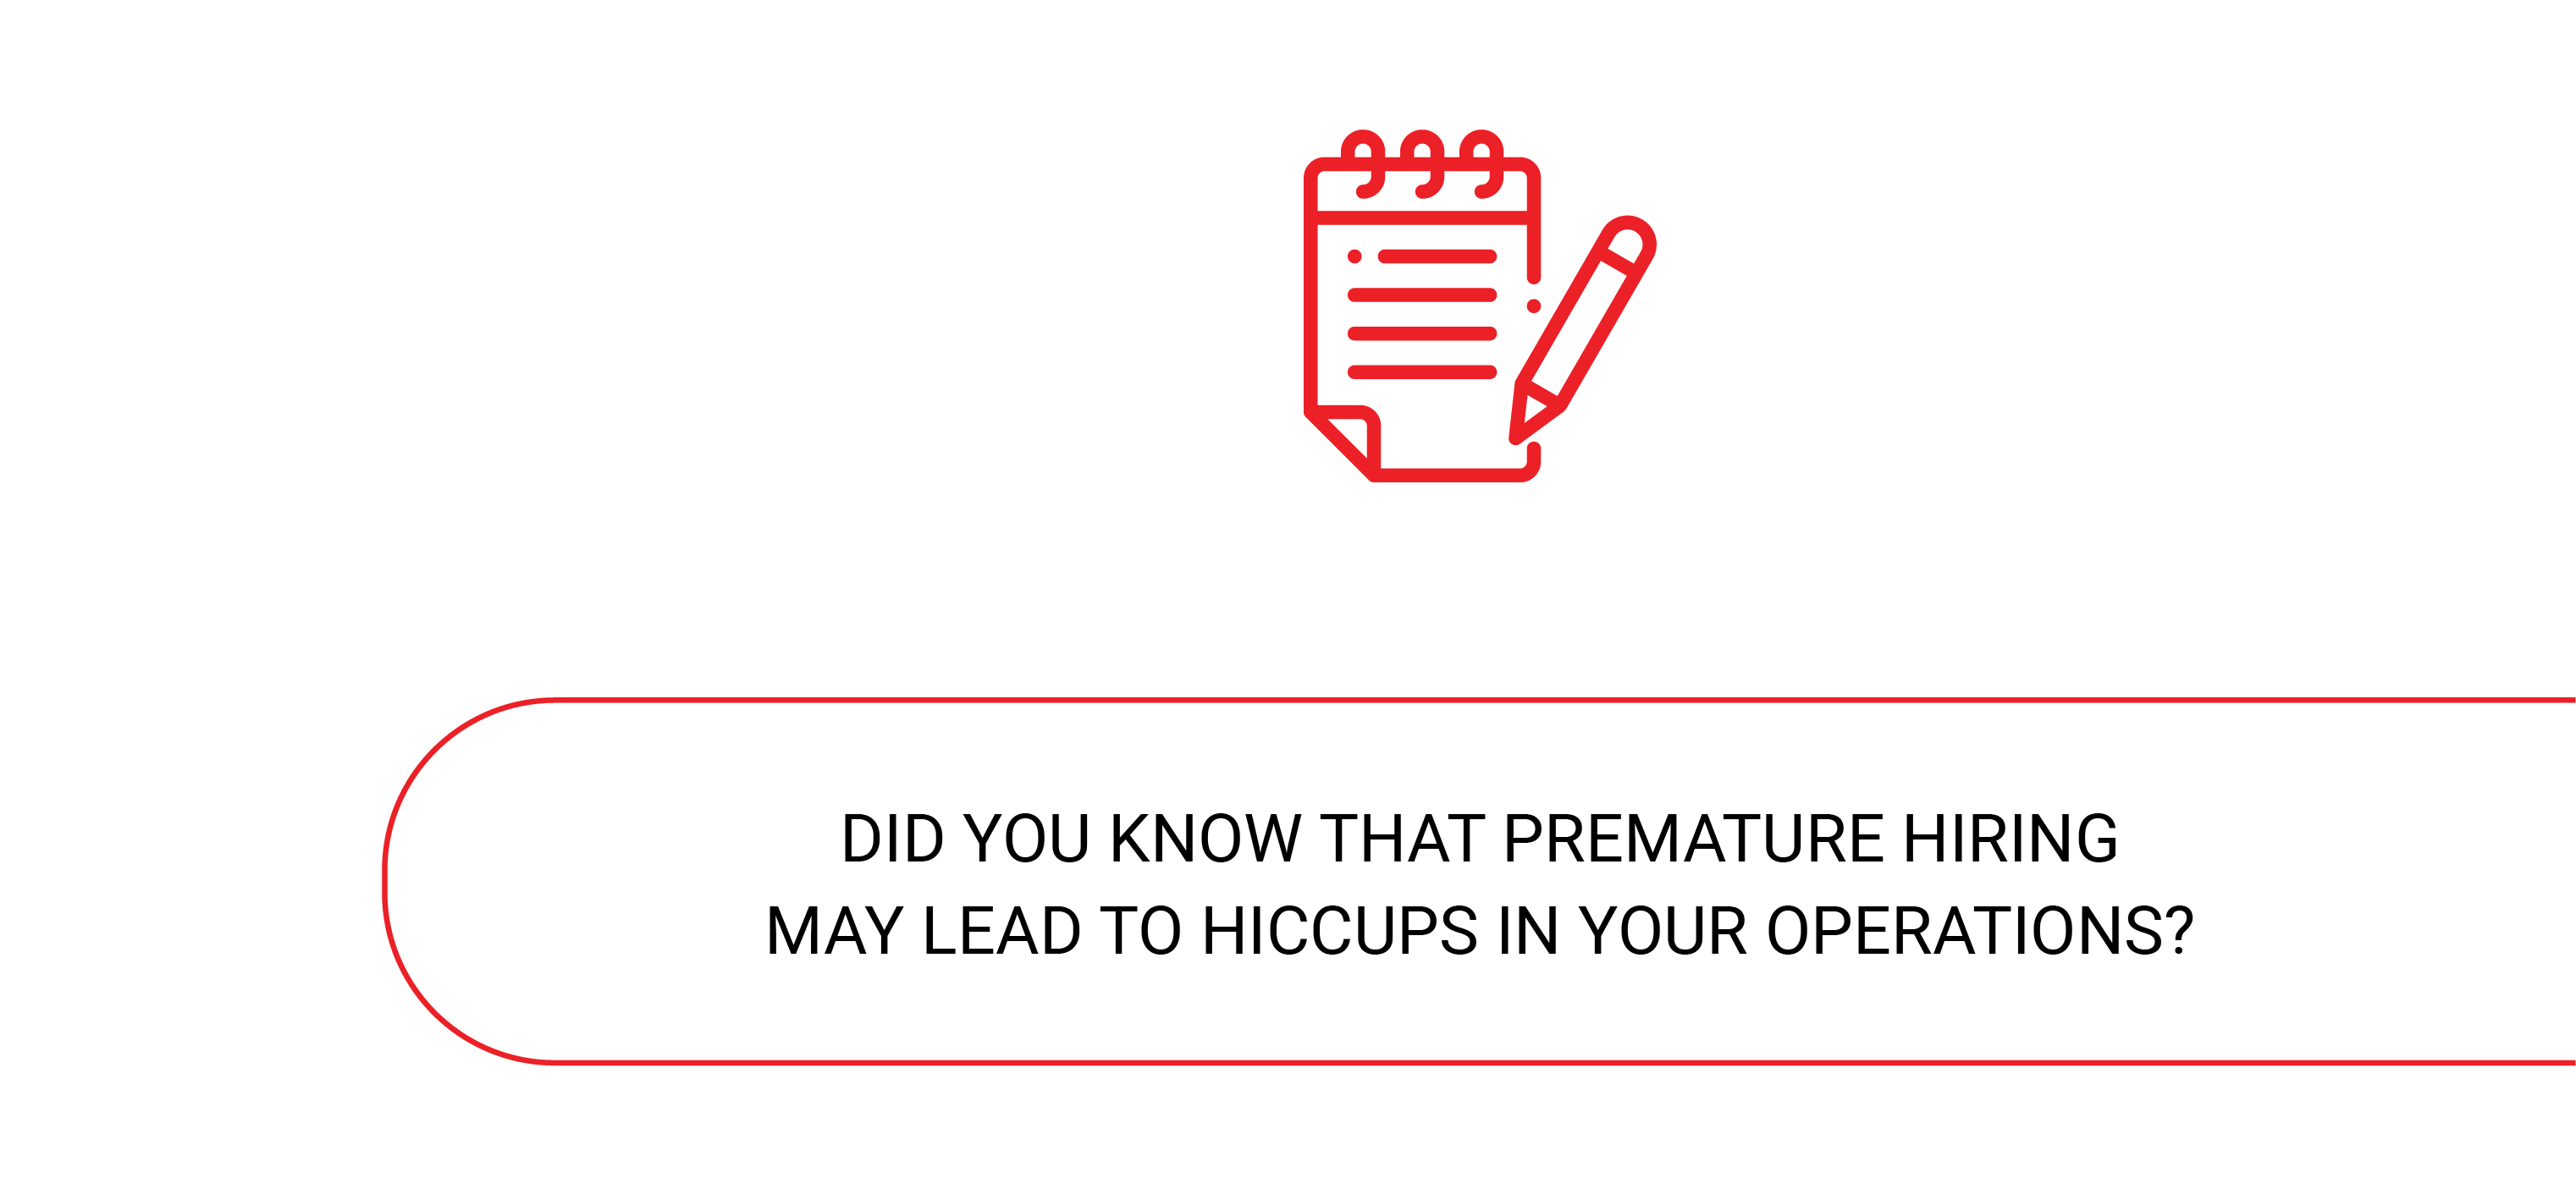 premature hiring may lead to hiccups in your operations